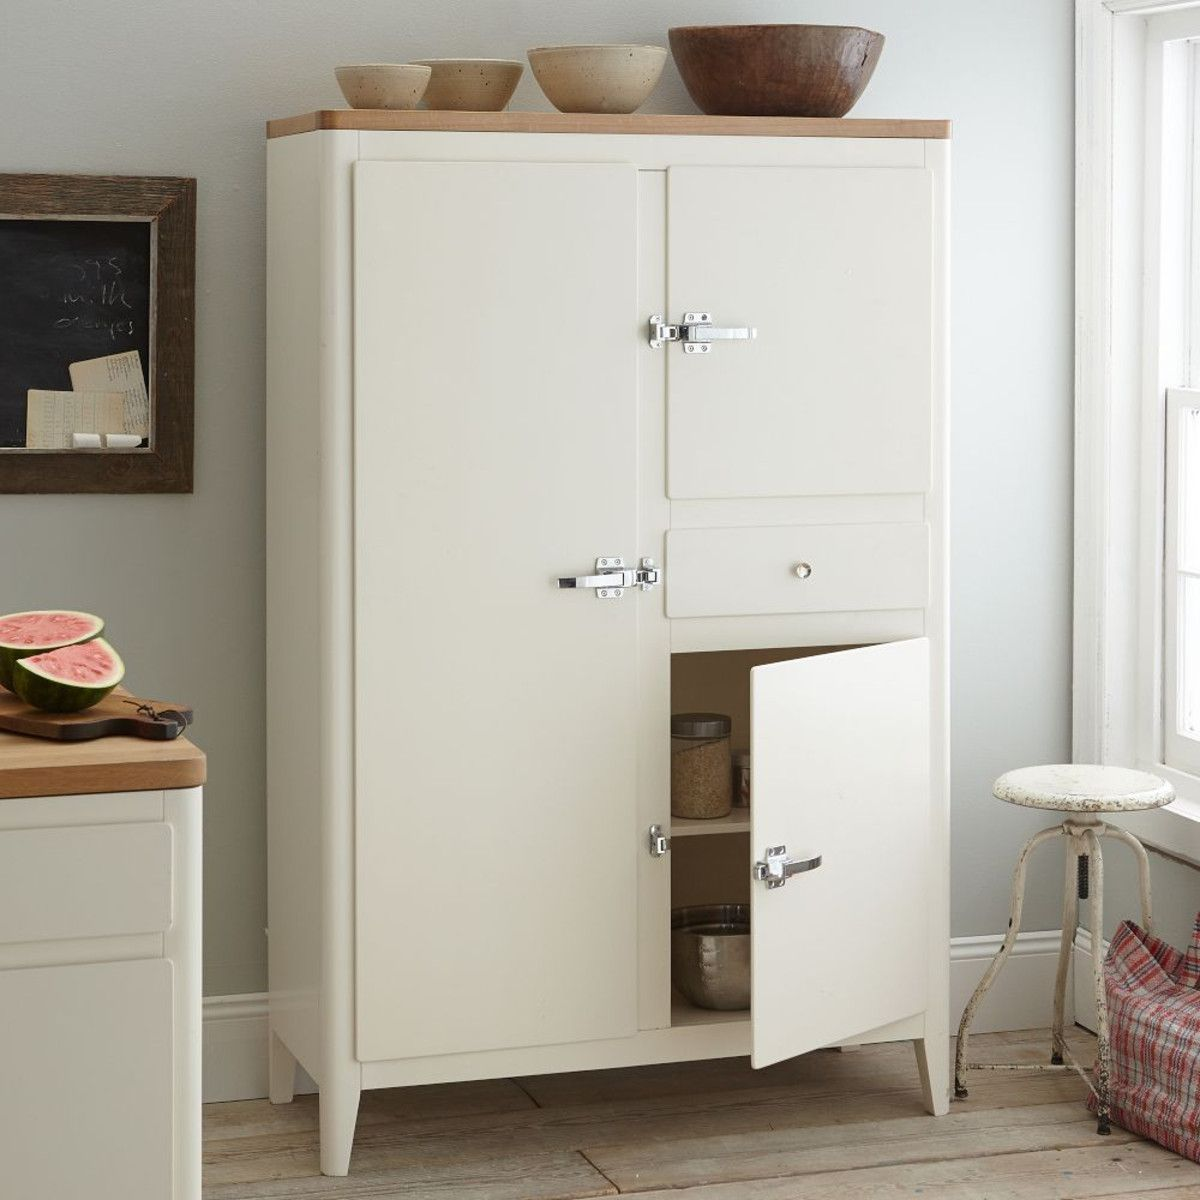 Best Freestanding Kitchen Unit Kitchen Armoire Freestanding 400 x 300